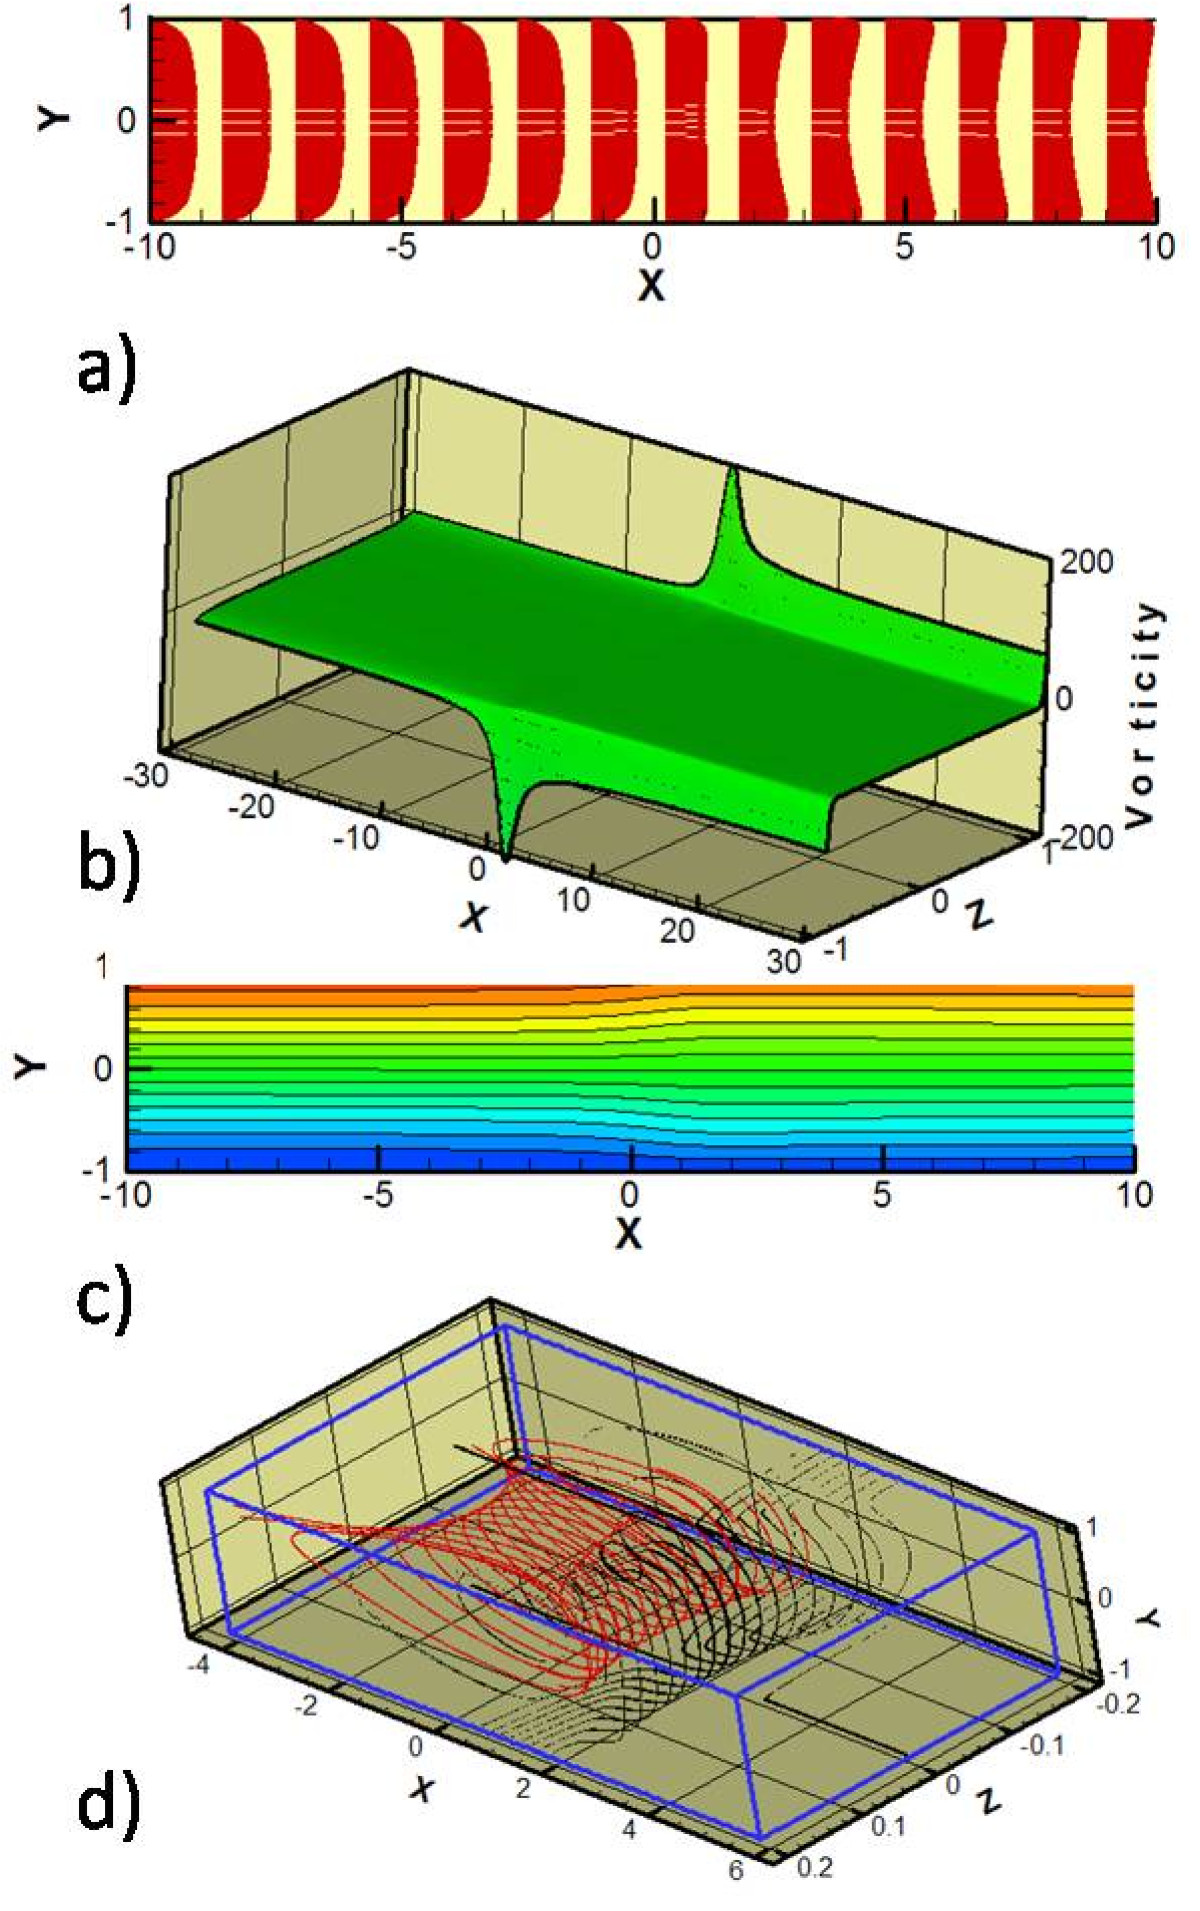 http://static-content.springer.com/image/art%3A10.1186%2F1754-0429-3-3/MediaObjects/13067_2010_Article_26_Fig6_HTML.jpg